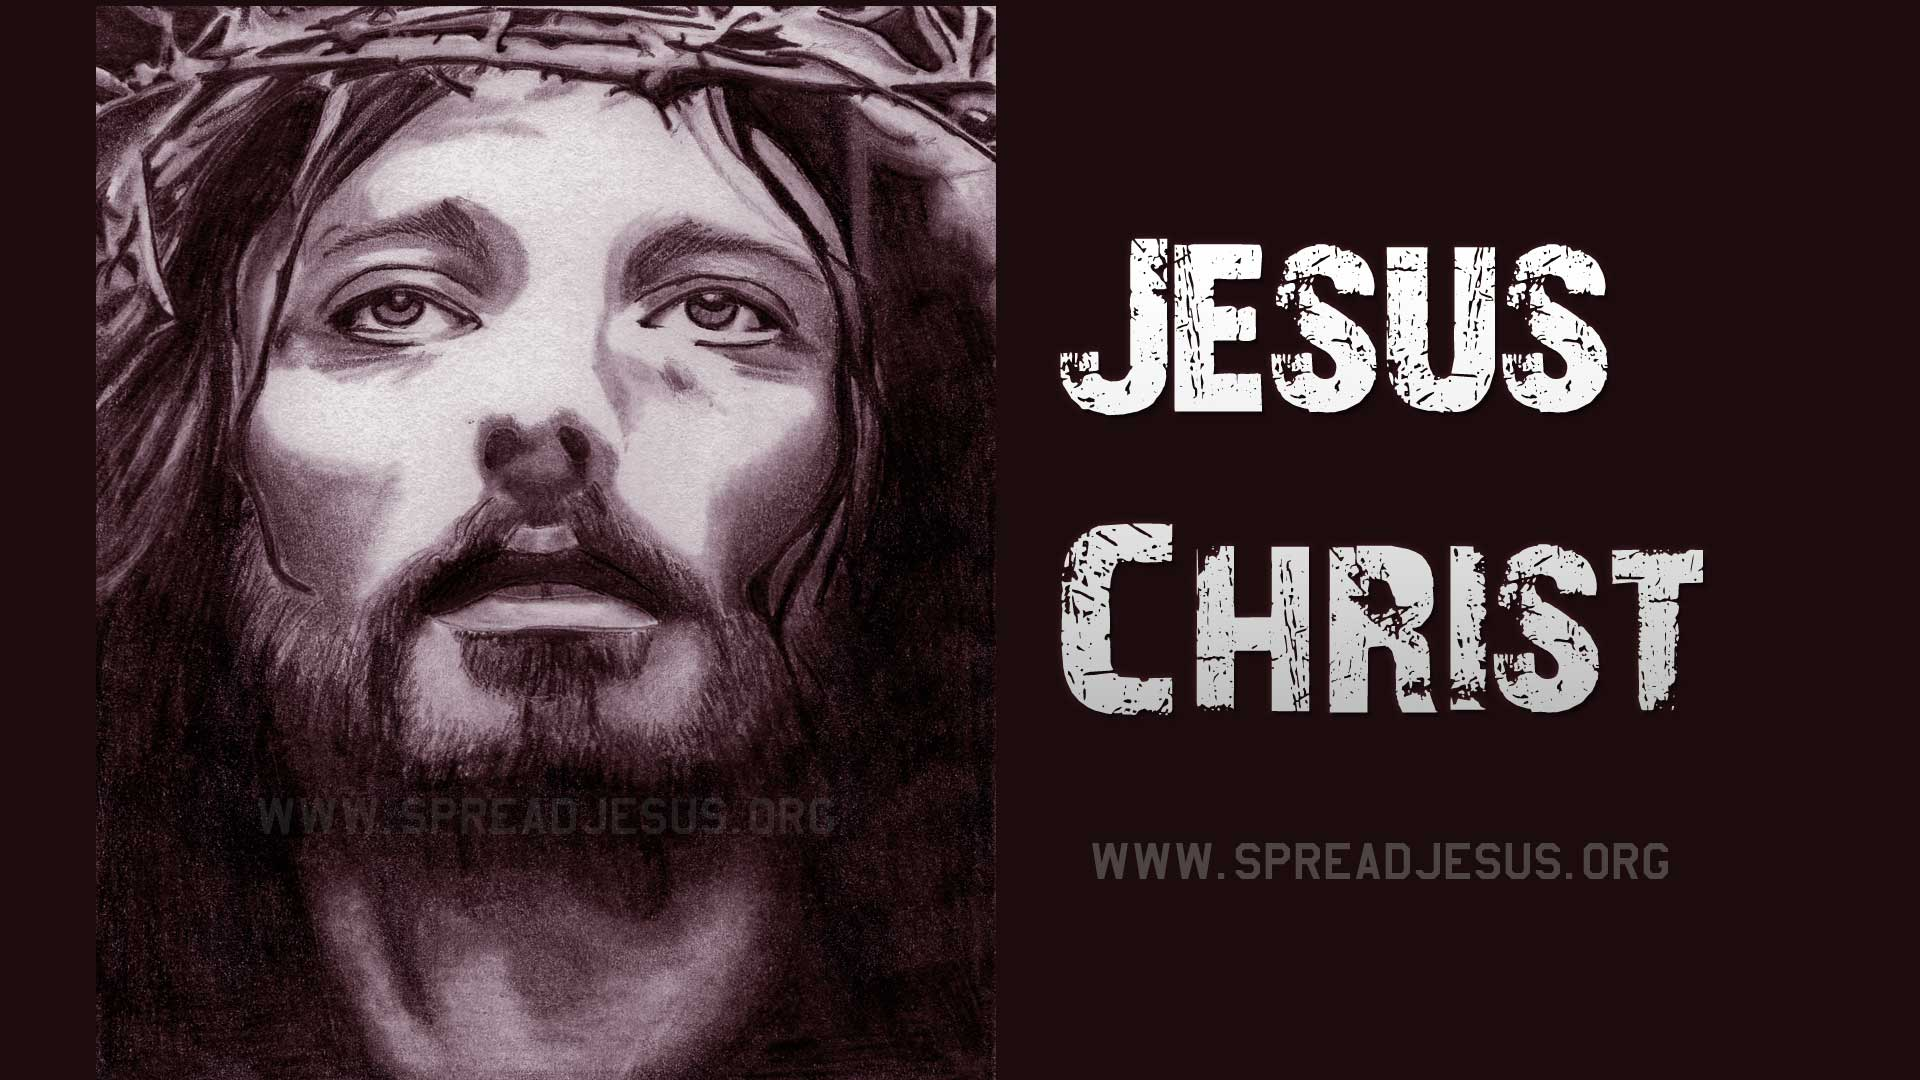 christion wallpapershd wallpapers of jesus christ spreadjesus org